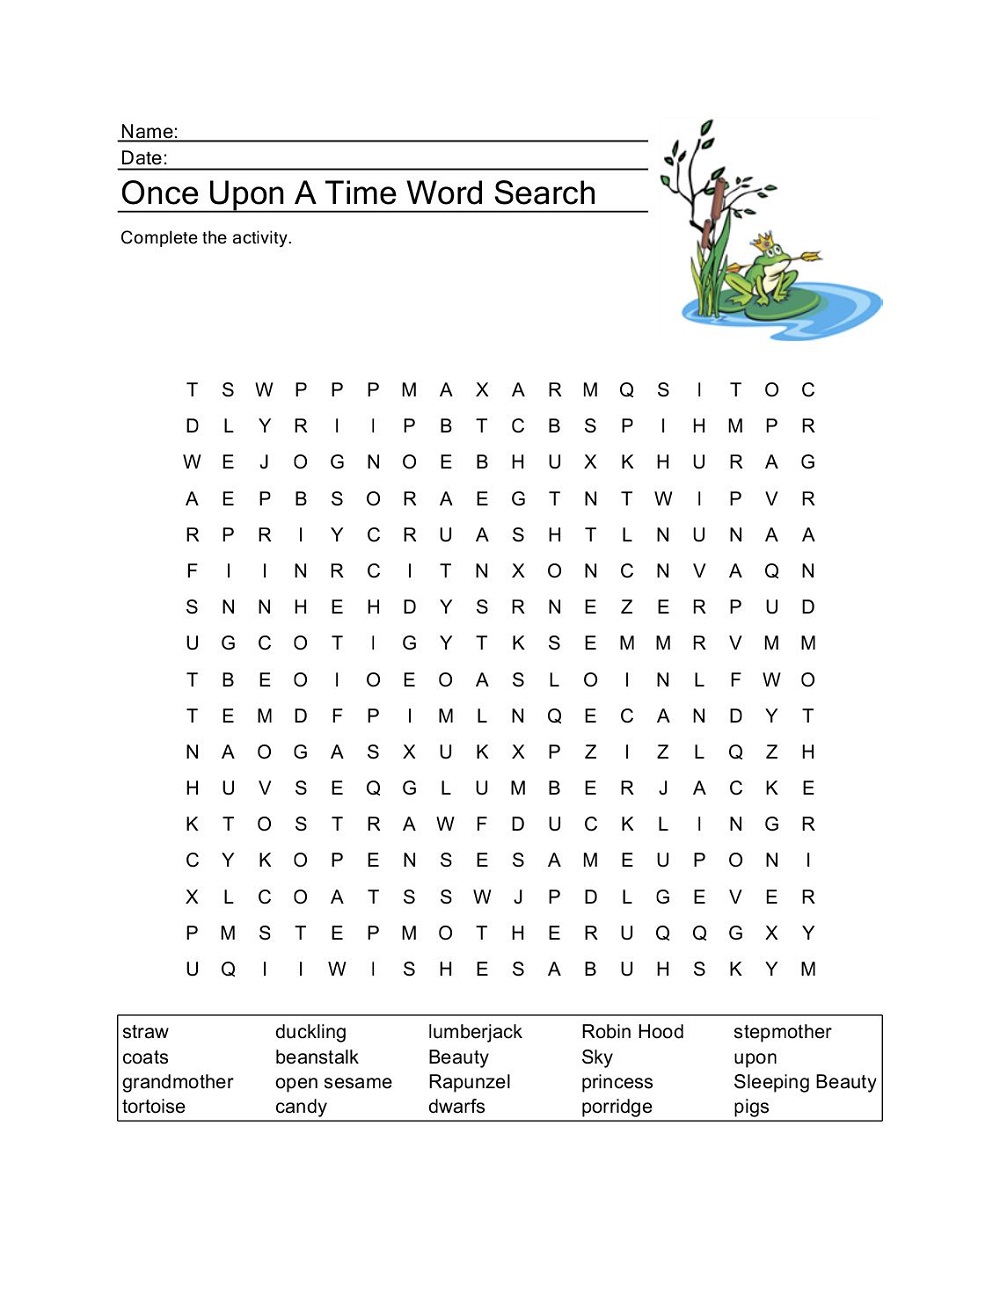 fairy-tale-word-search-practice